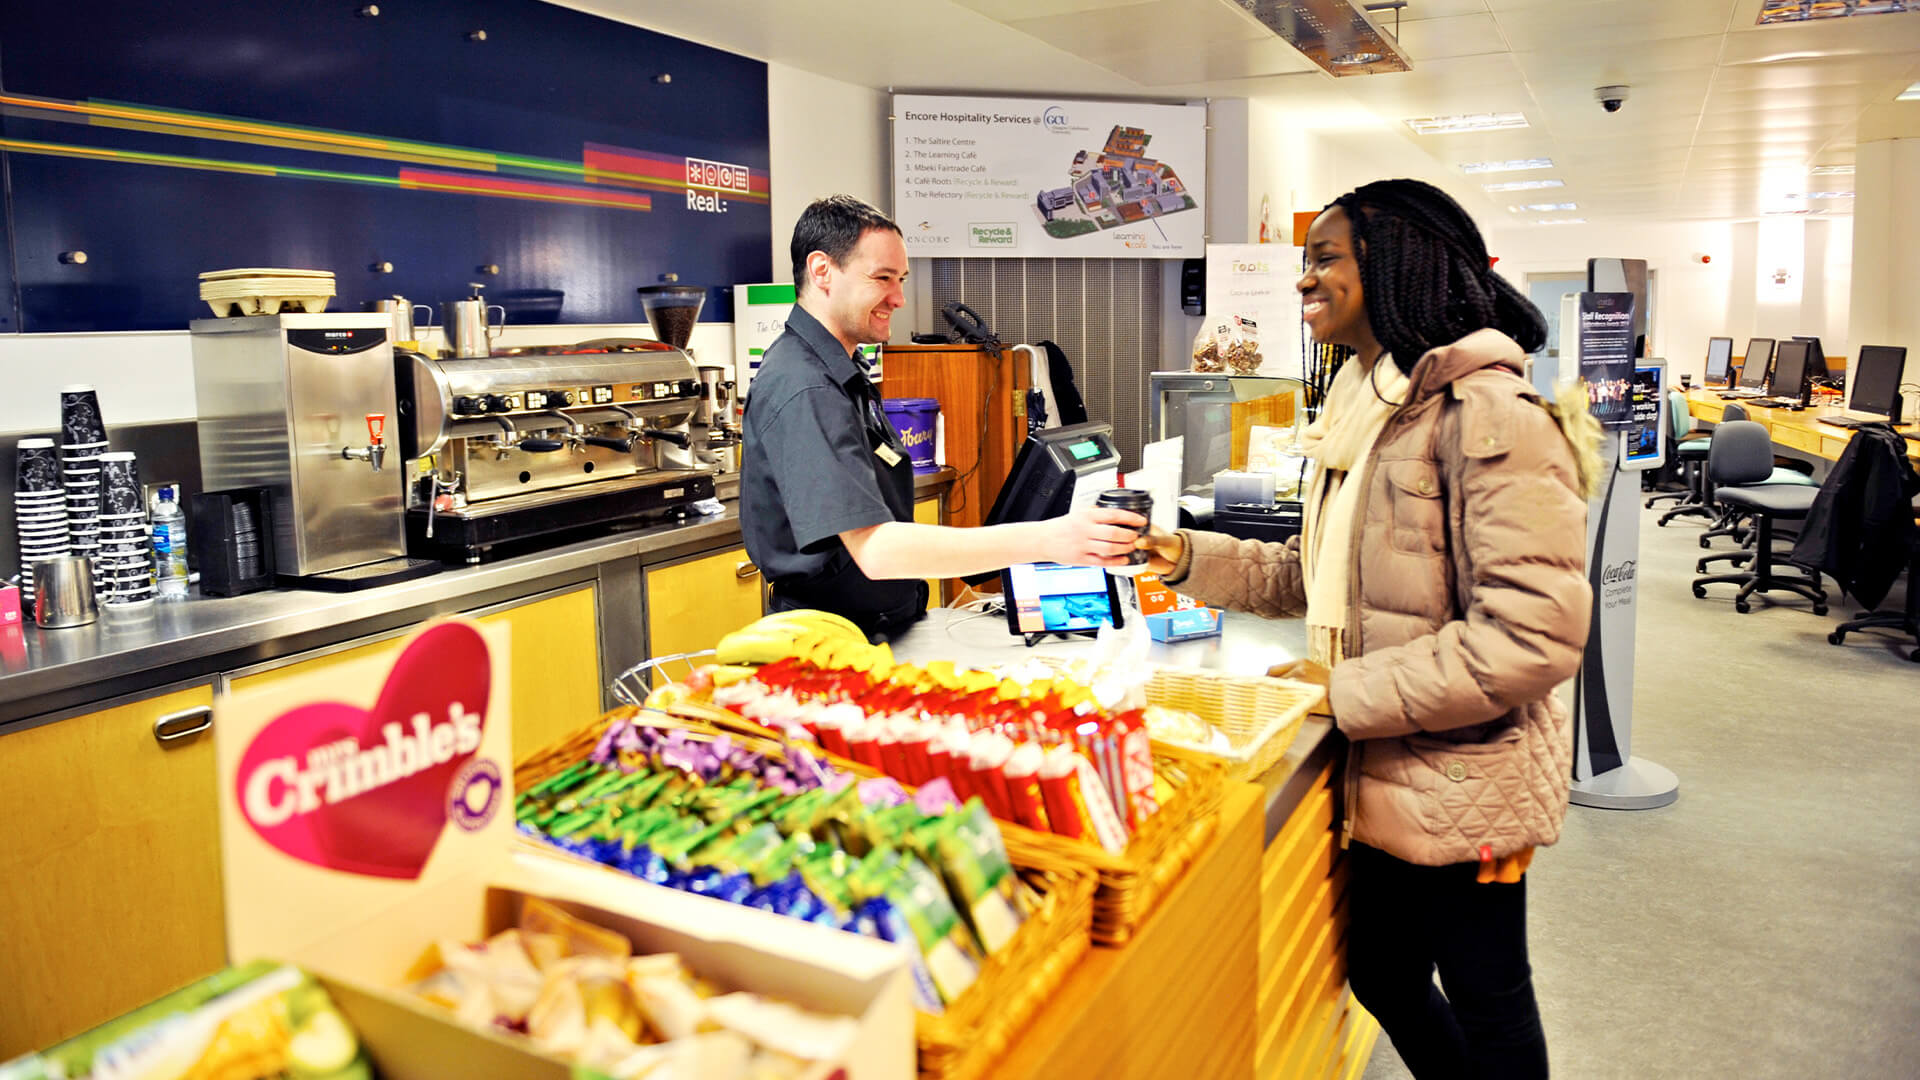 International student buying food at Learning Café on Glasgow Caledonian University campus